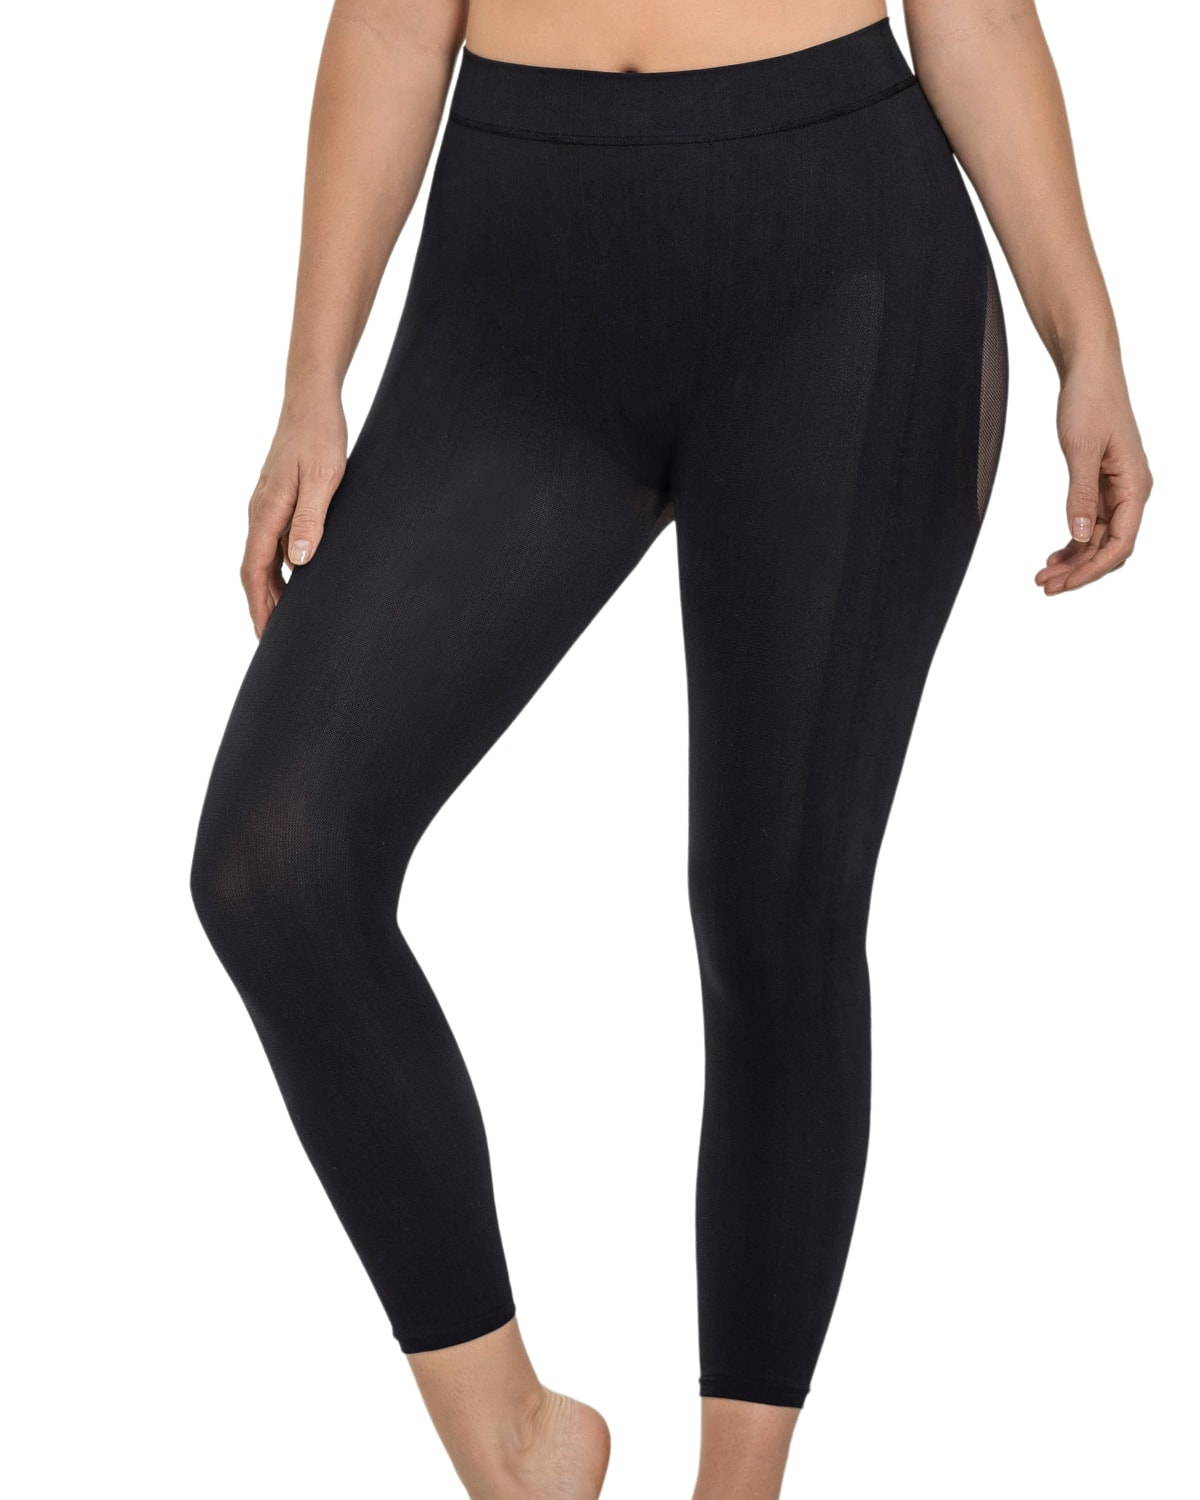 Invisible Super Comfy Compression High-Waisted Capri Shaper